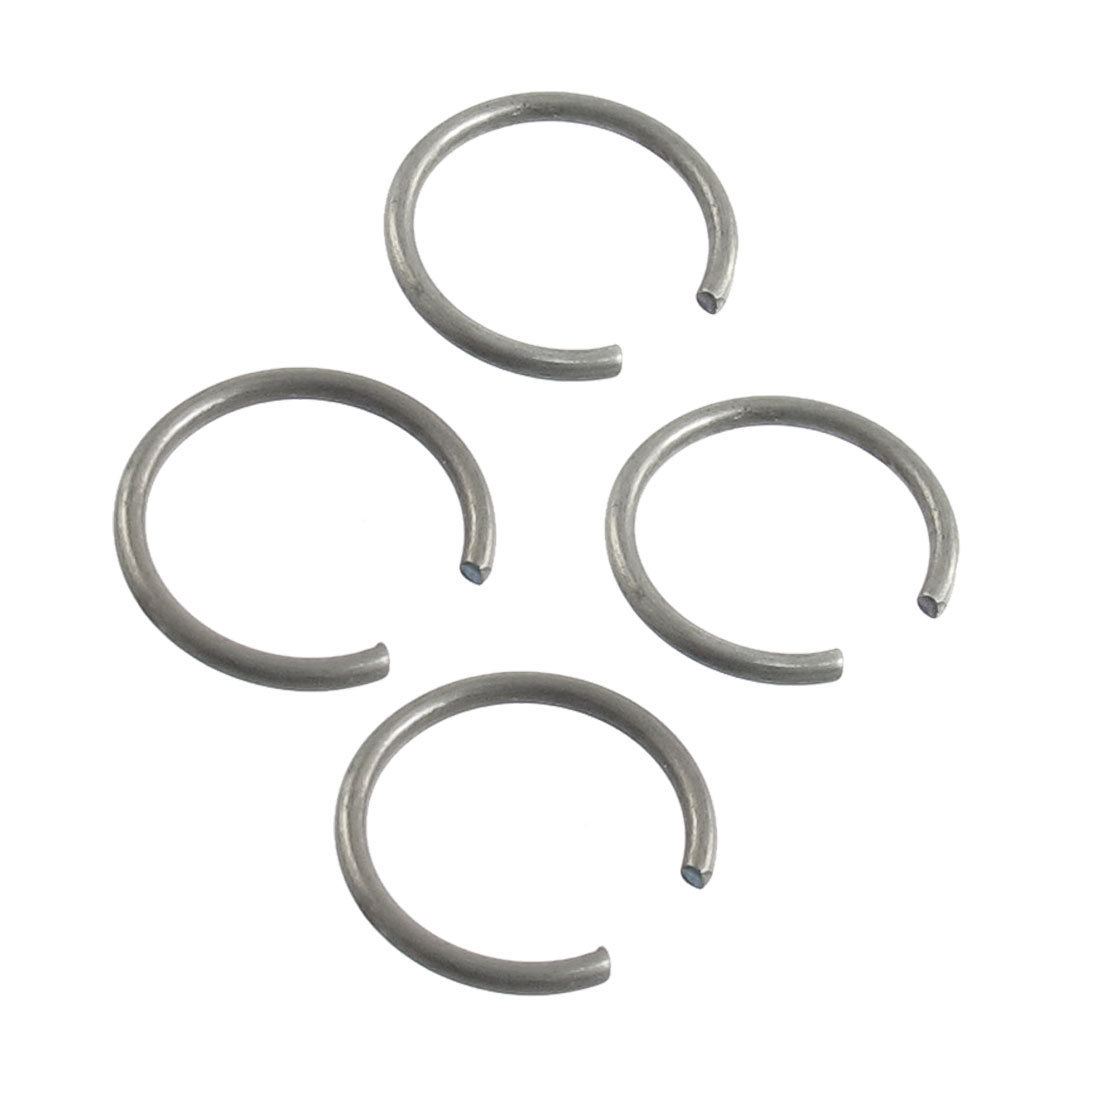 17.5mm x 21.5mm x 2mm Retainer Ring 5Pcs for FF03-26 Electric Hammer